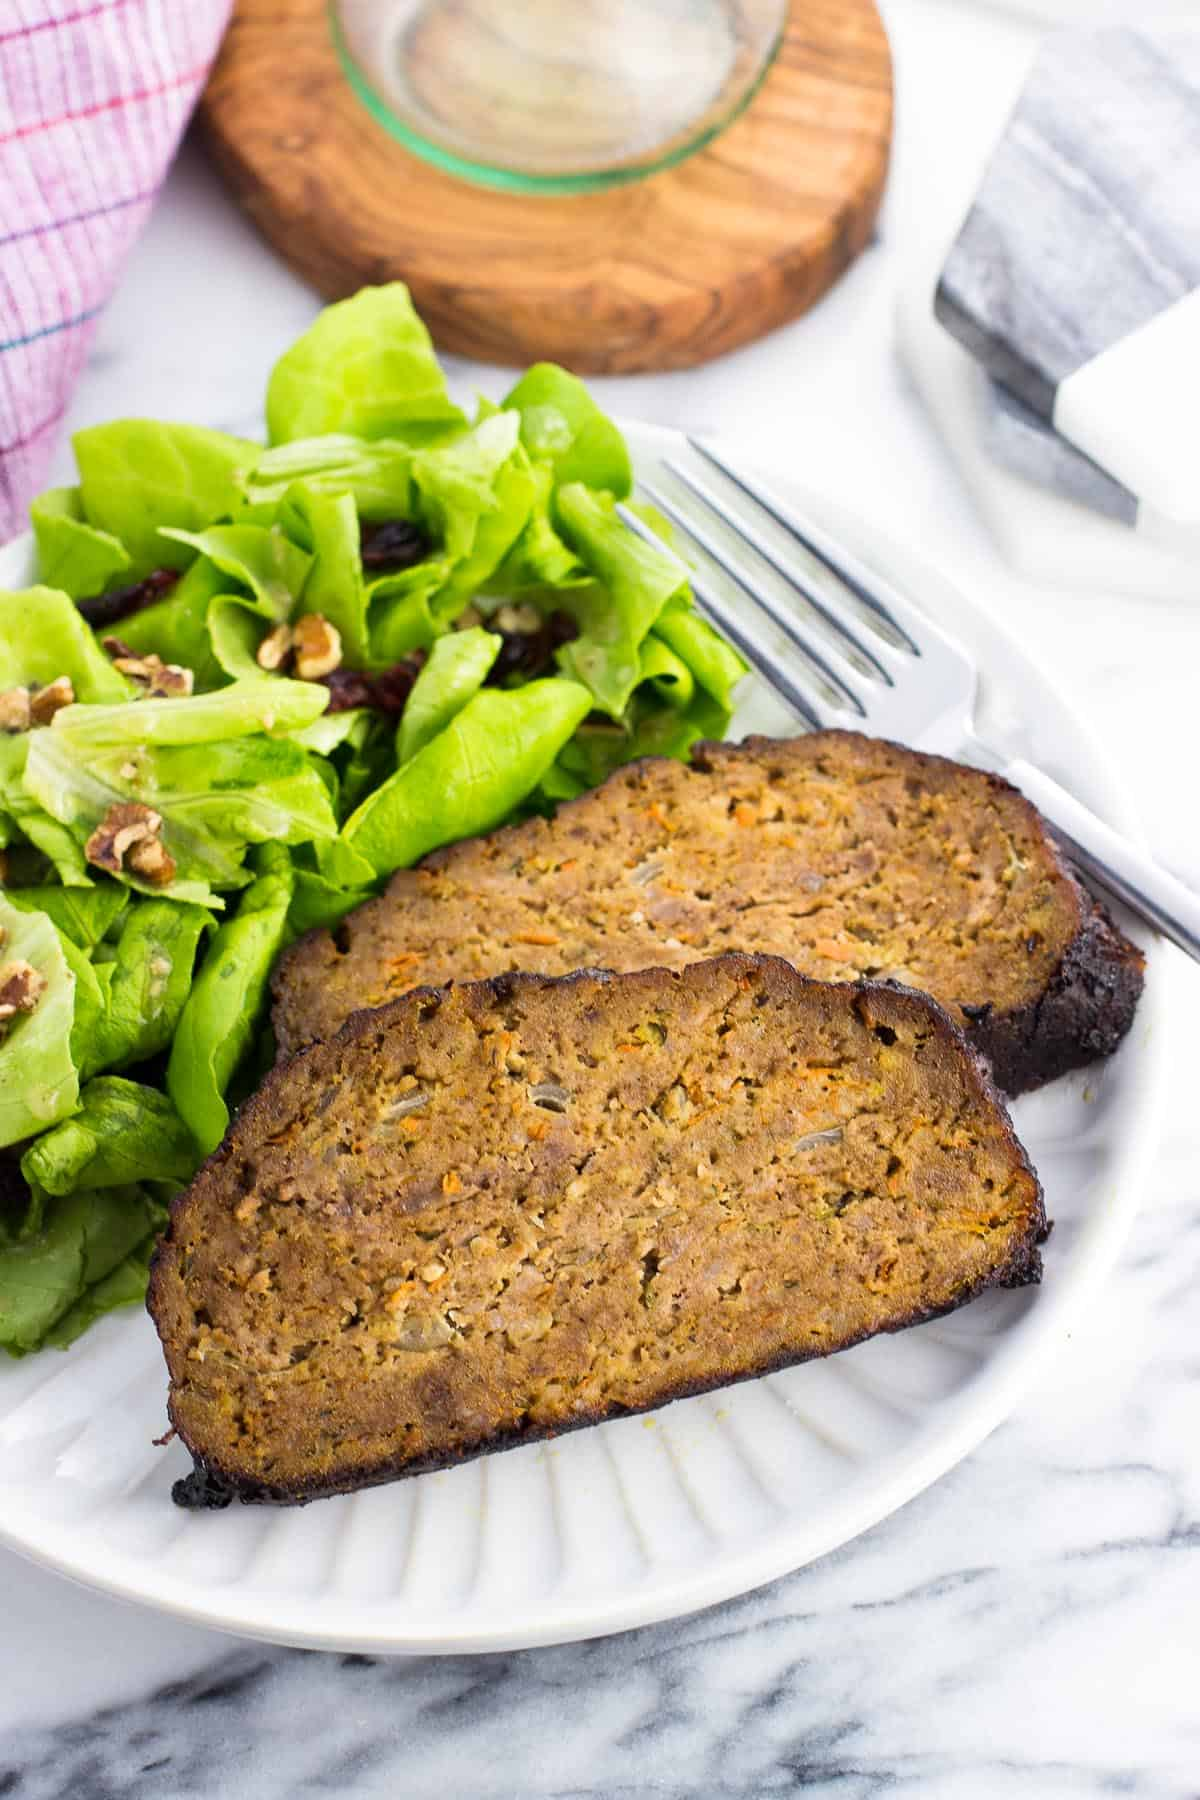 Two slices of meatloaf on a plate with a side salad.